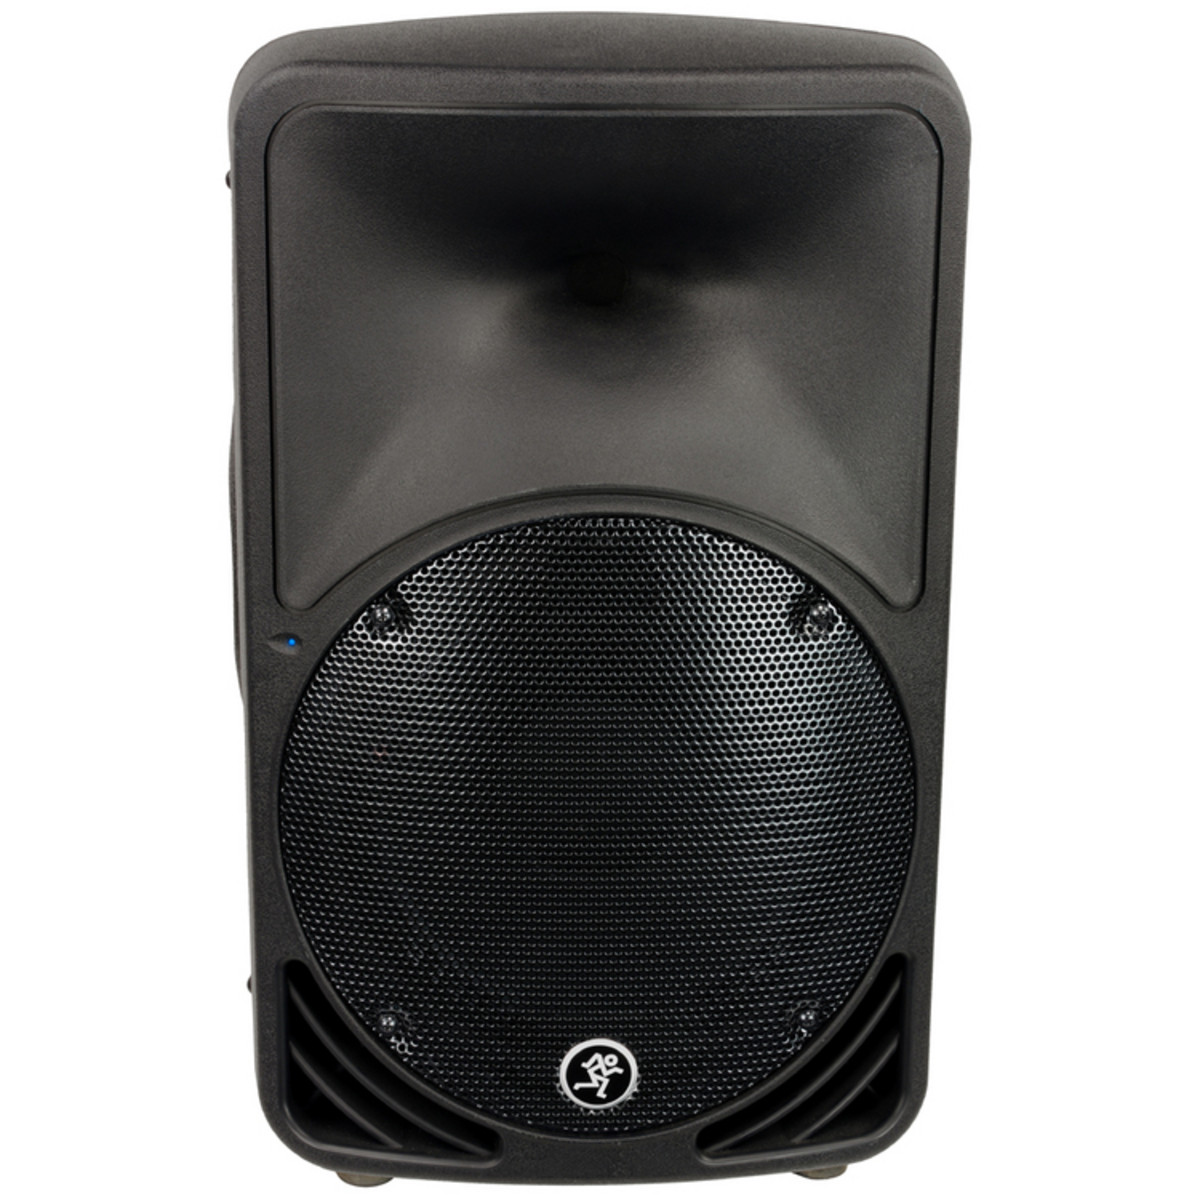 mackie srm350v2 active 200w speaker nearly new at gear4music. Black Bedroom Furniture Sets. Home Design Ideas